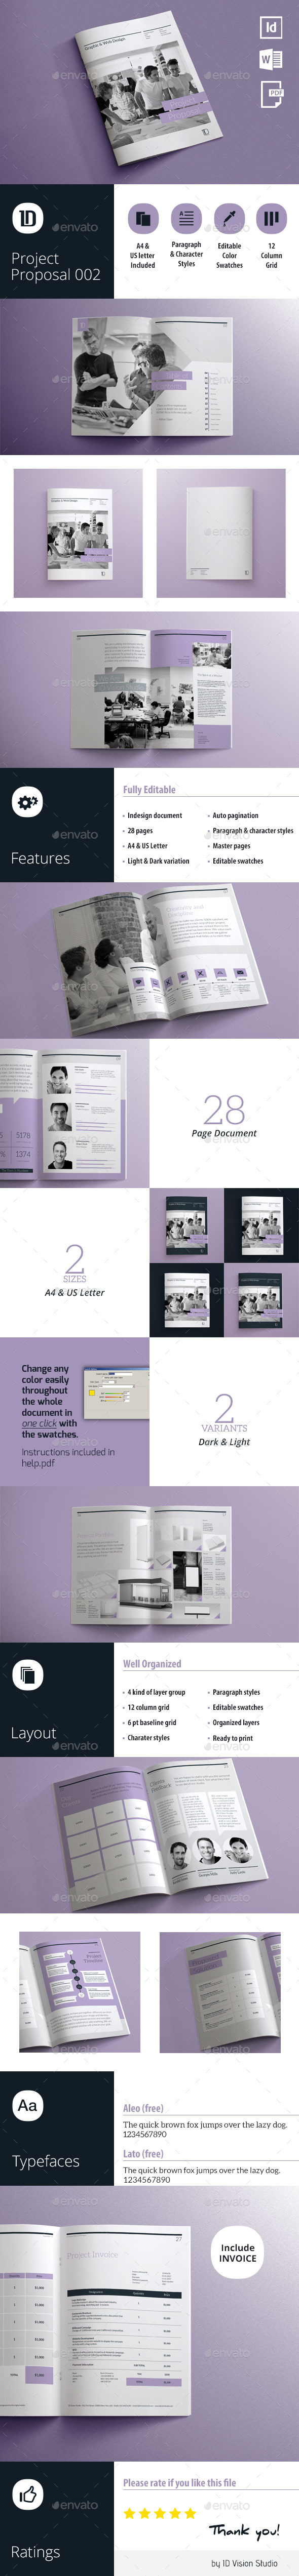 GraphicRiver Project Proposal Template 002 10834634